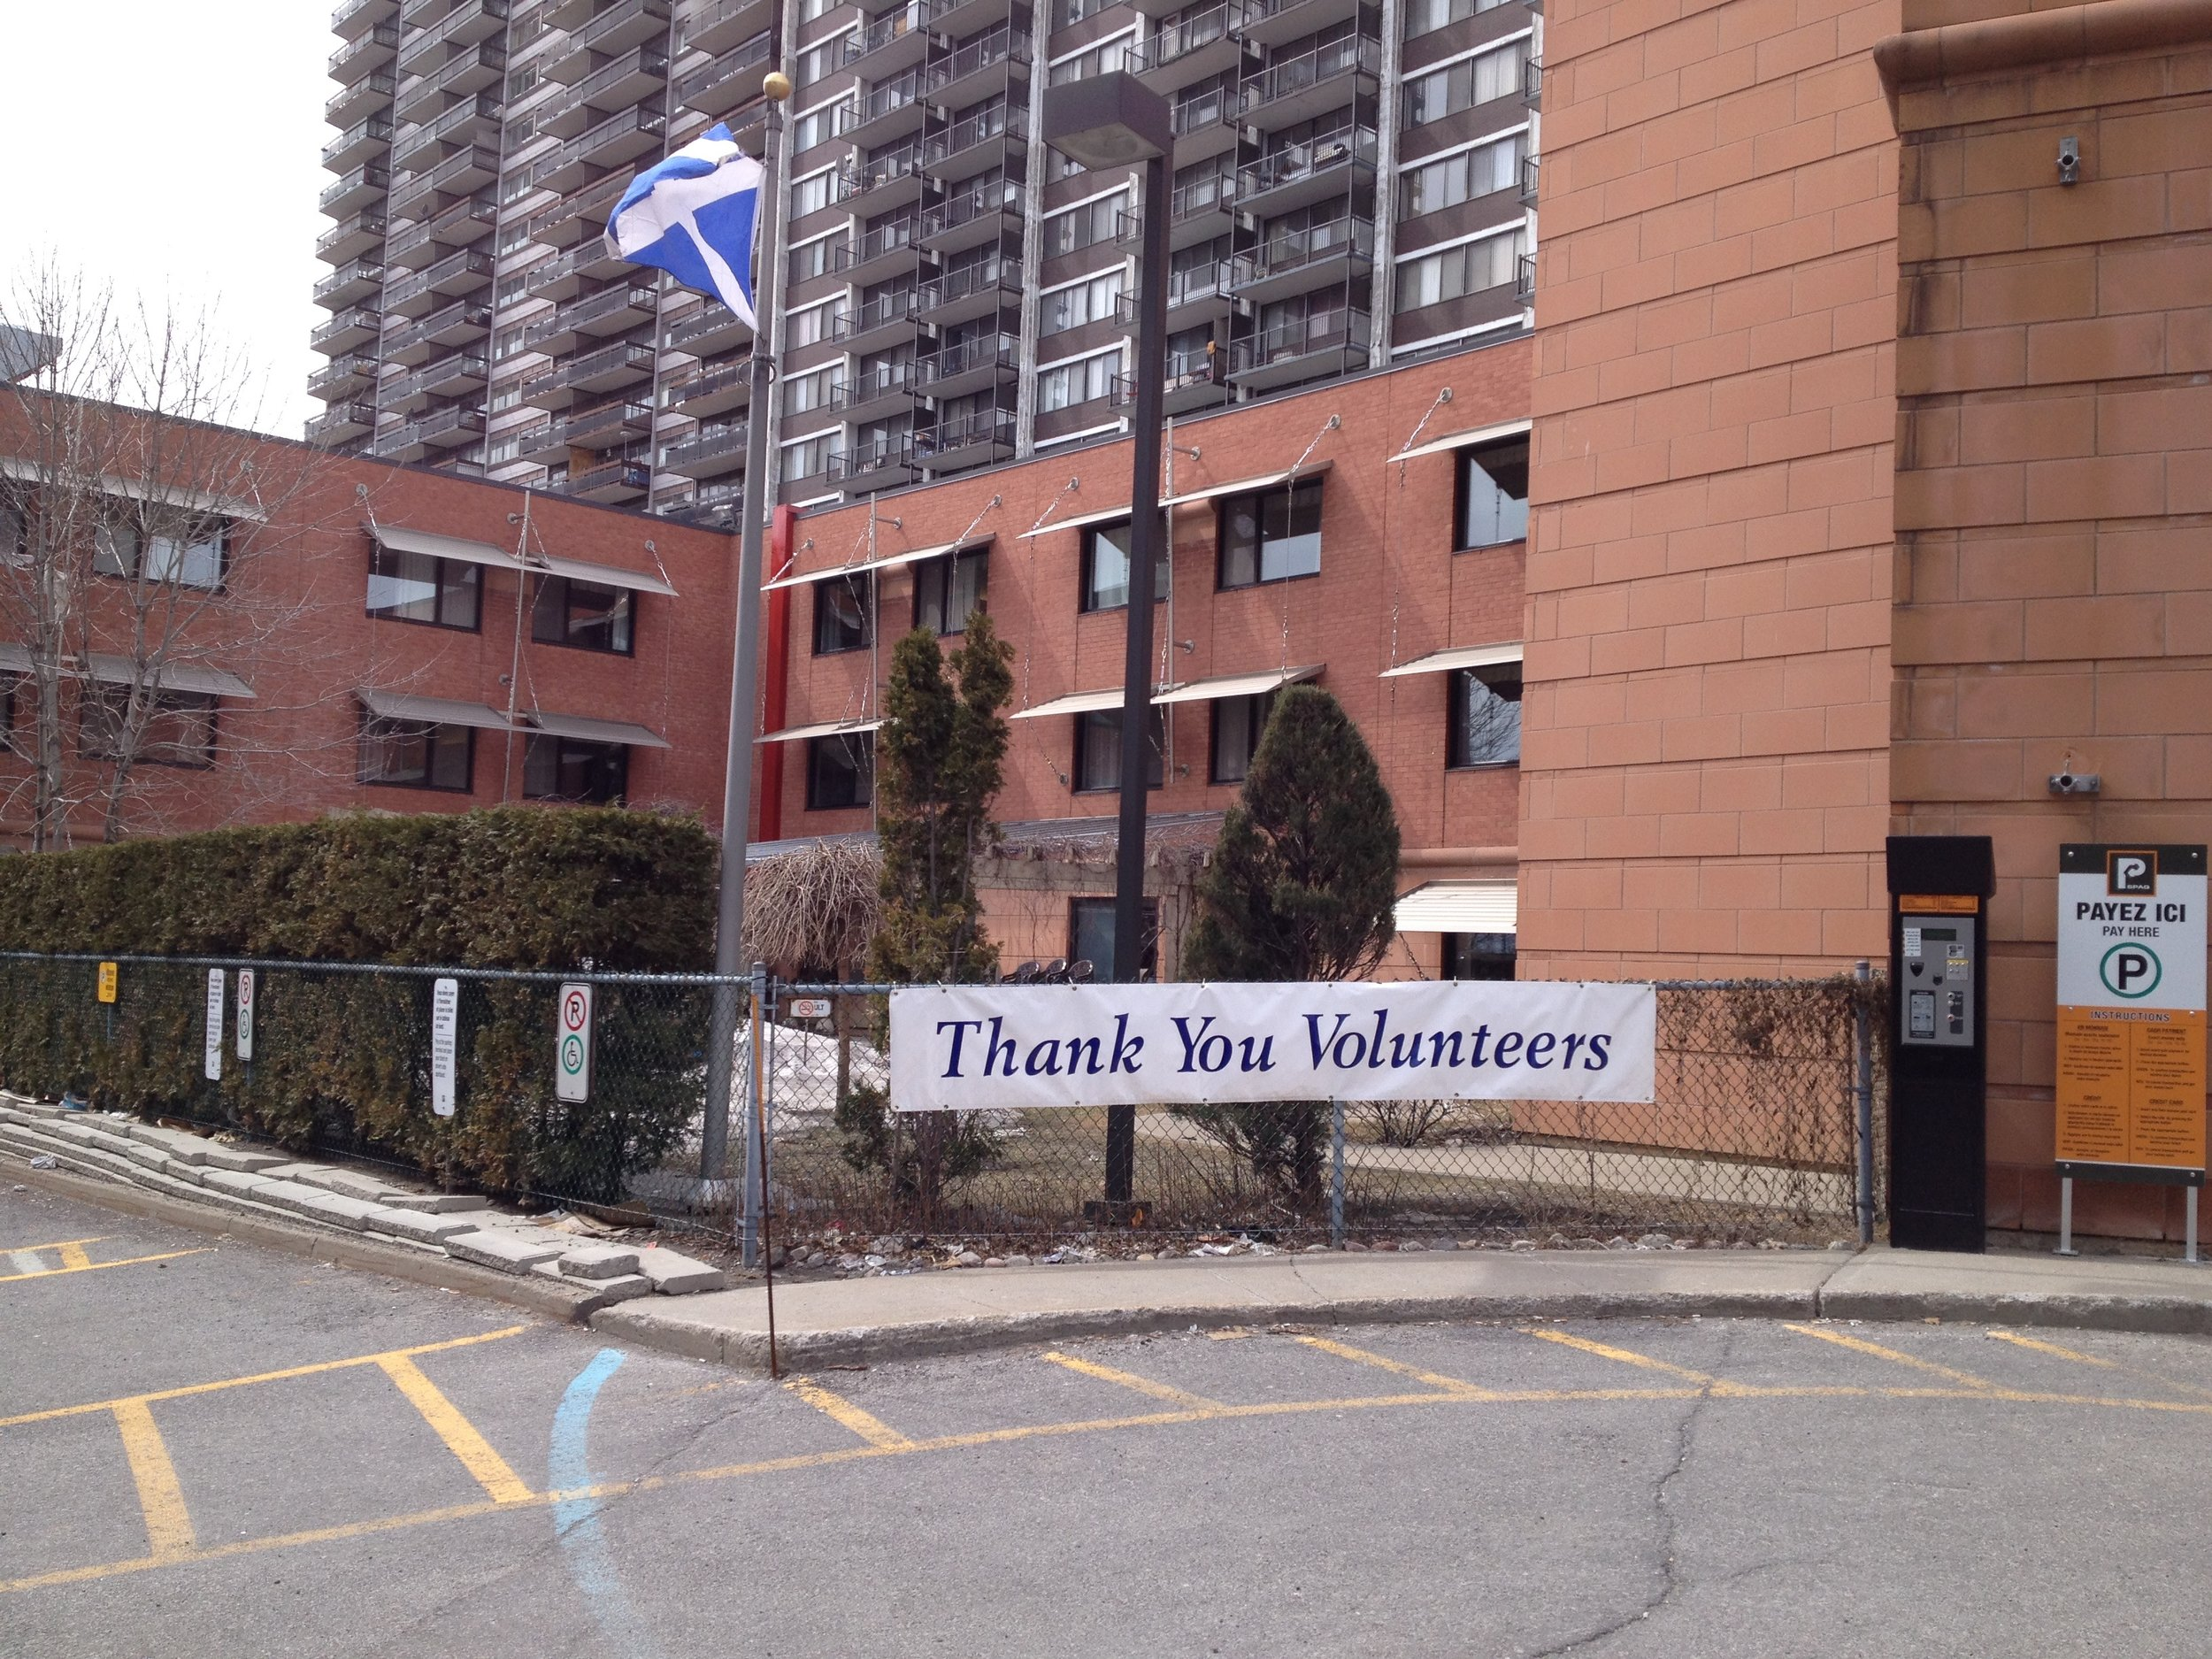 What We Do - We touch the lives of hundreds of people each year, by supporting programs and activities for elderly Presbyterians in their own homes across the greater Montreal area, as well as the 70 residents who call the St-Andrew Residential Centre, home.We work continuously to reach into our communities to support seniors and their caregivers in improving their quality of life.